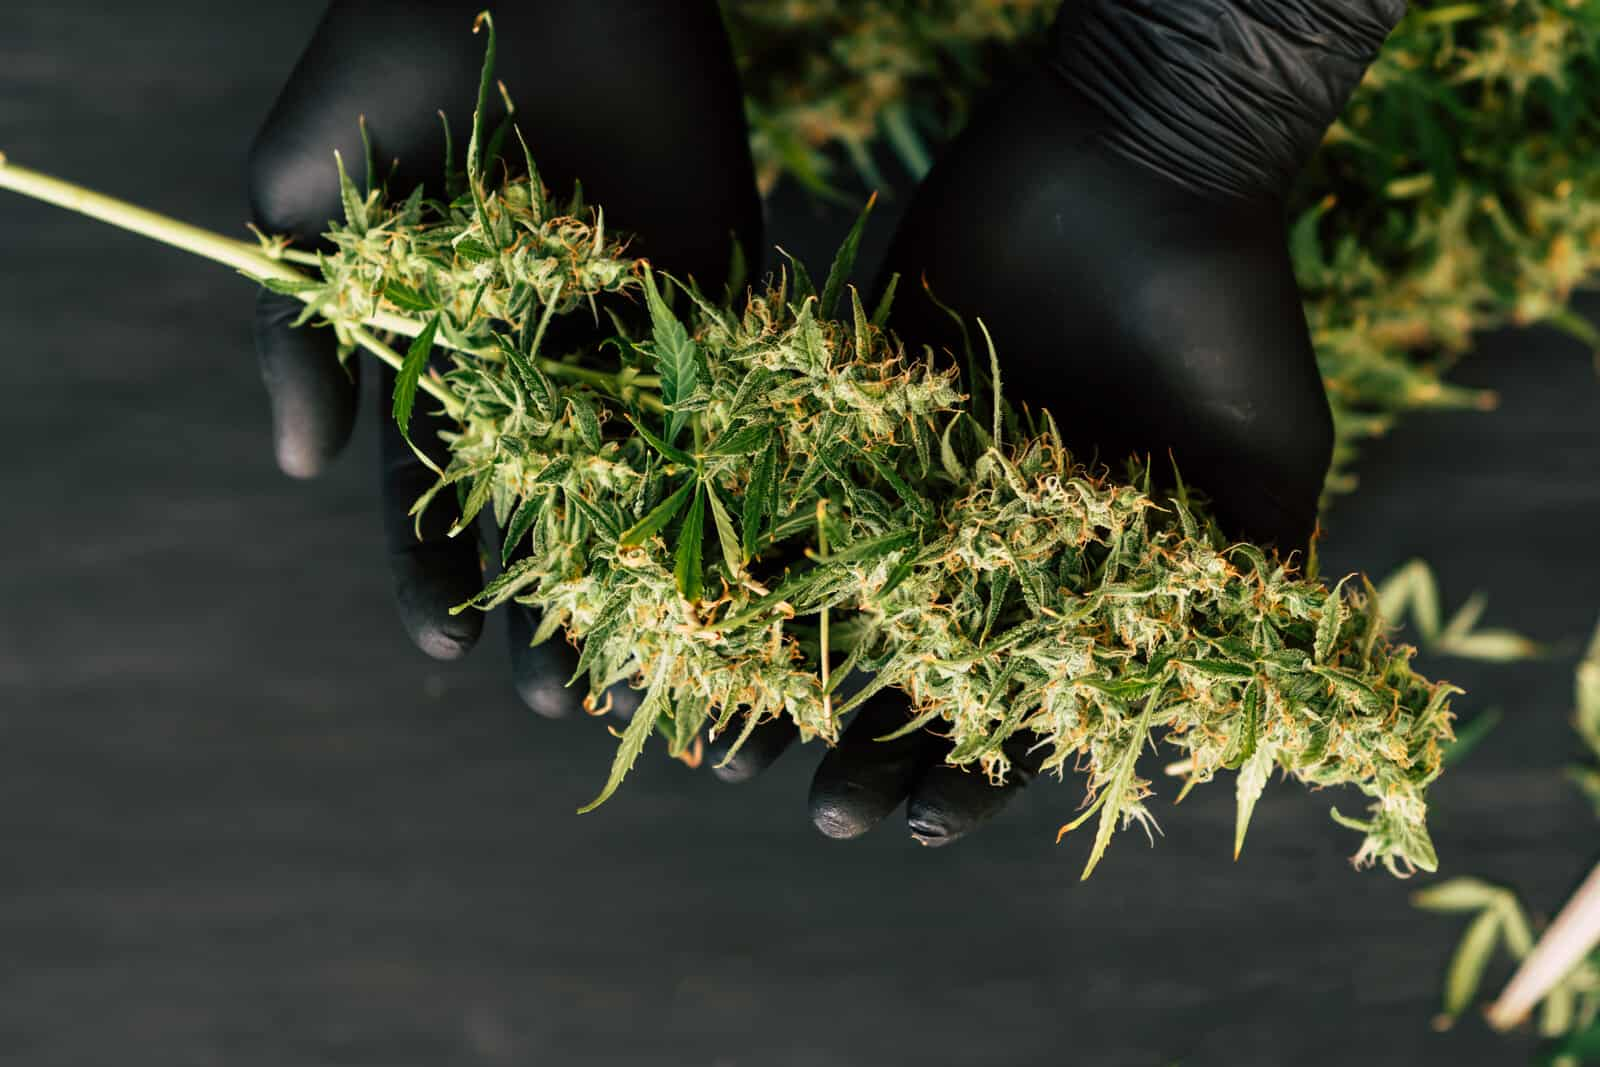 How to Dry Weed for Beginners